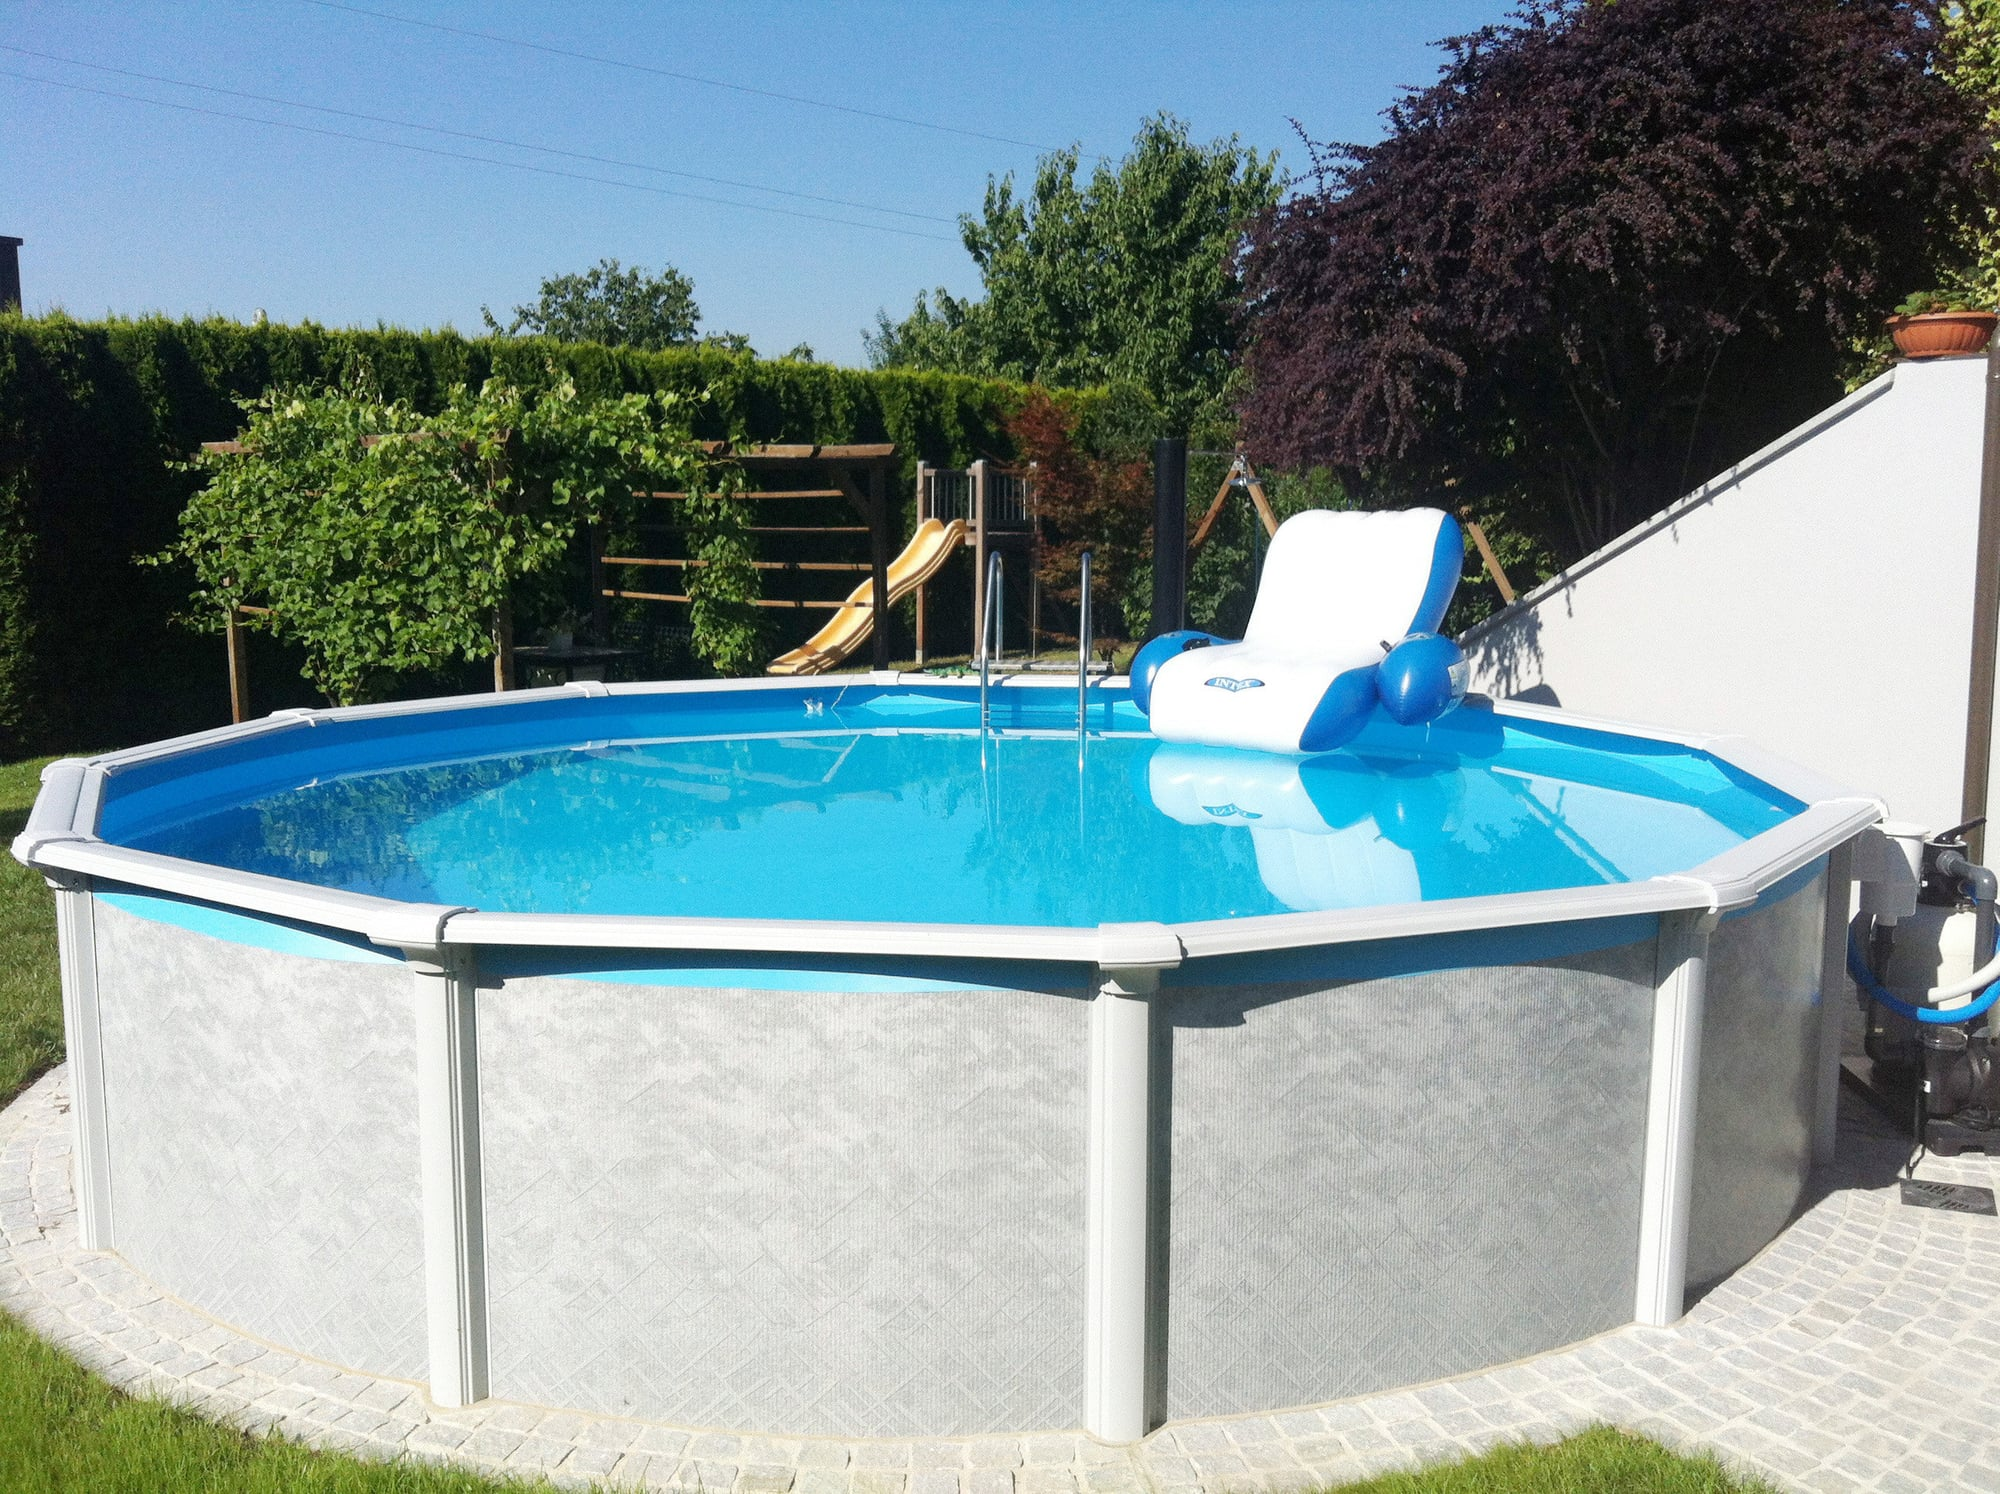 Pool Zubehör Steinbach Steinbach Grande Pool Set Rund Ø 549 X 135 Cm Pools Shop